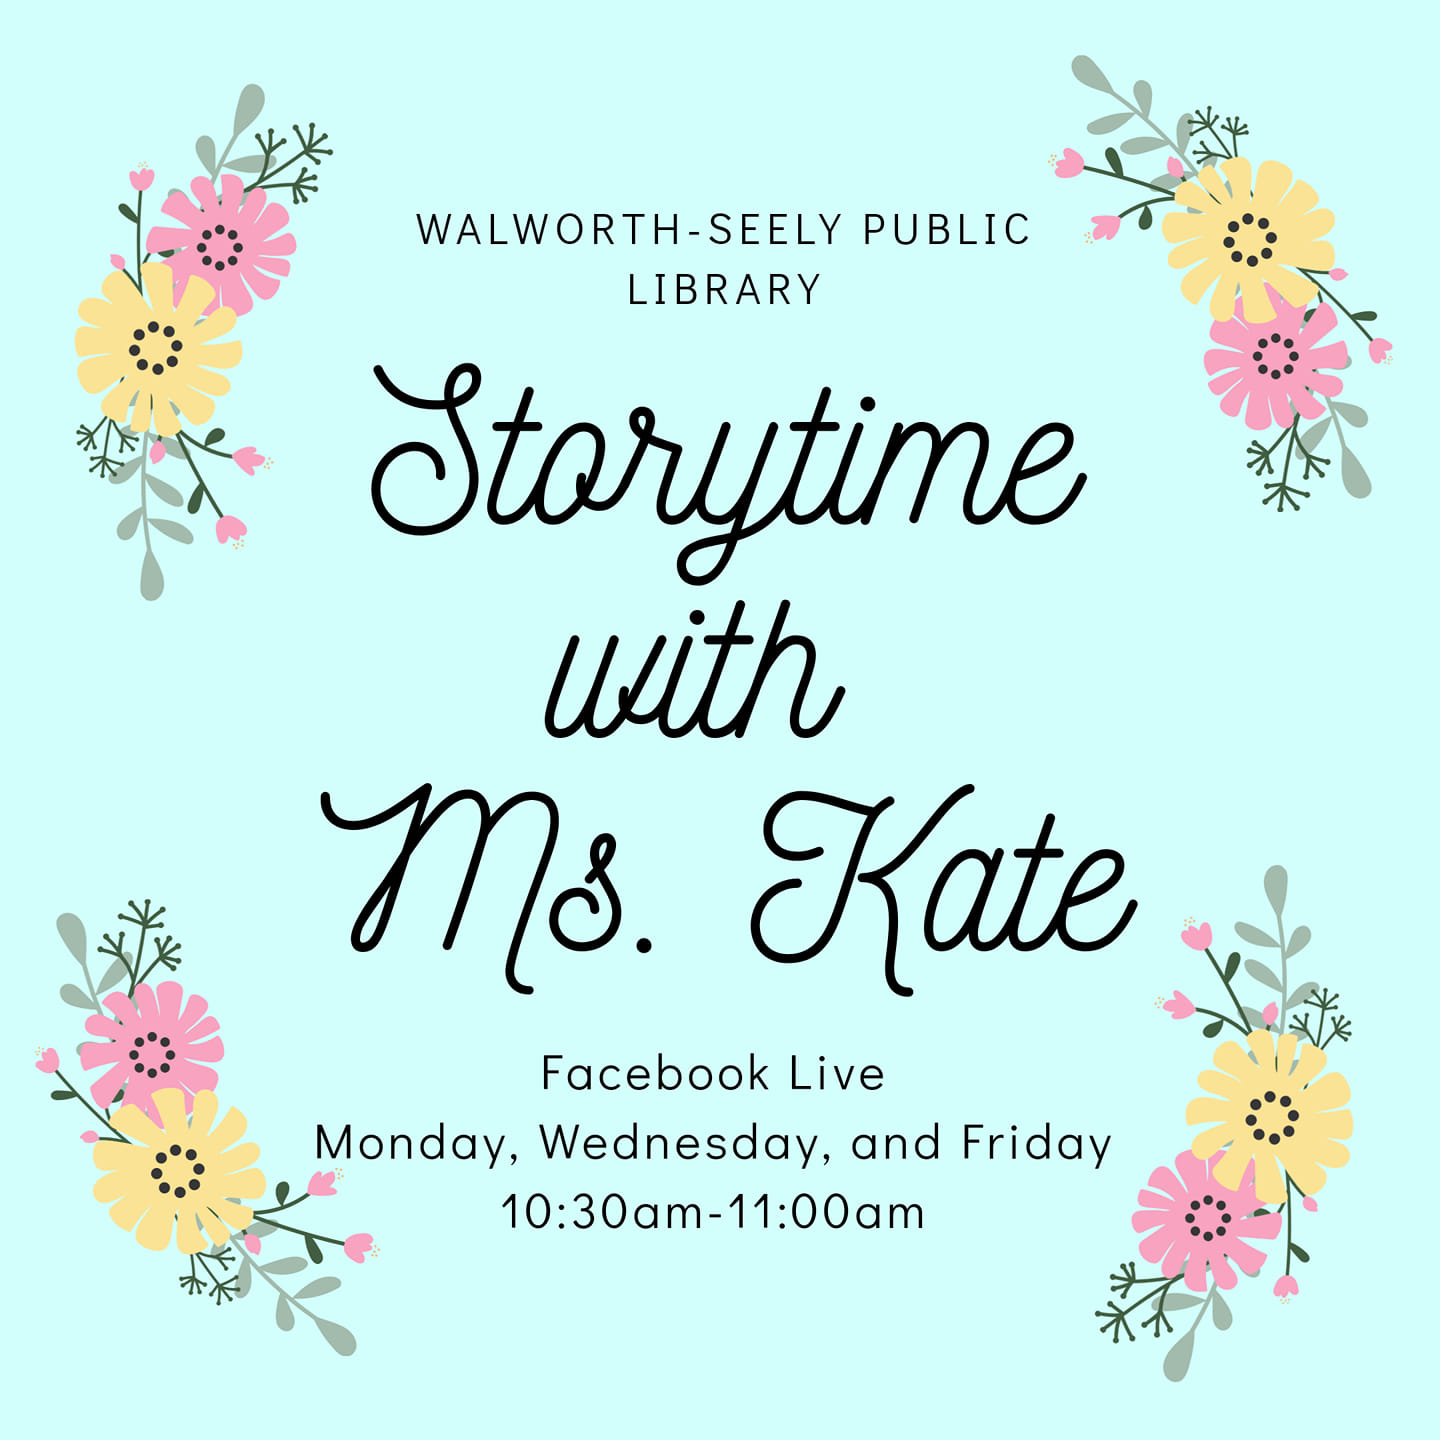 Story Time with Ms. Kate